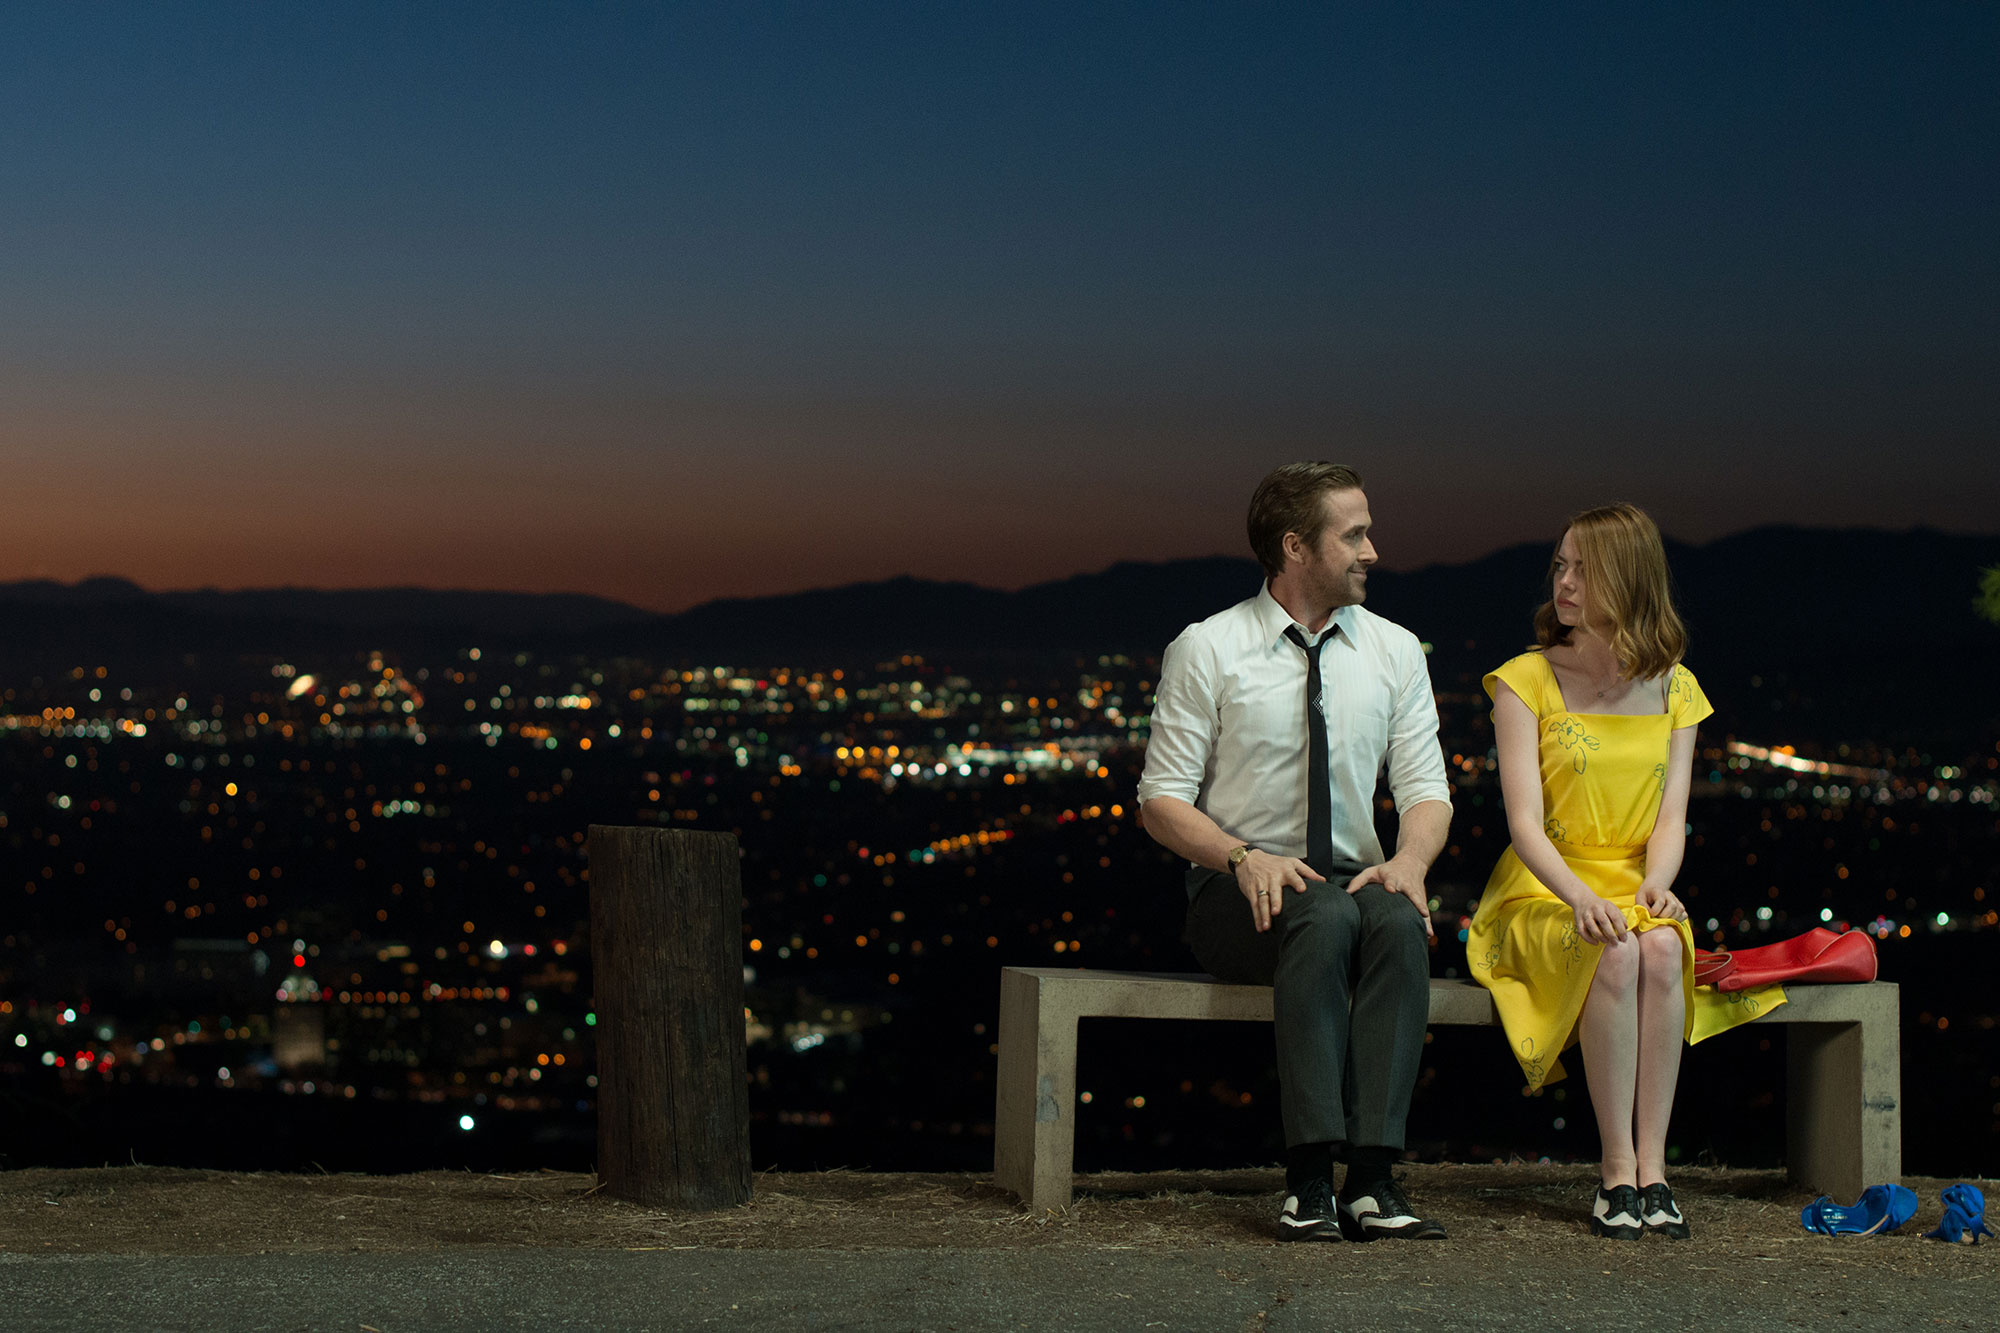 © 2017 Summit Entertainment, LLC. All Rights Reserved. Photo credit: EW0001: Sebastian (Ryan Gosling) and Mia (Emma Stone) in LA LA LAND.Photo courtesy of Lionsgate.